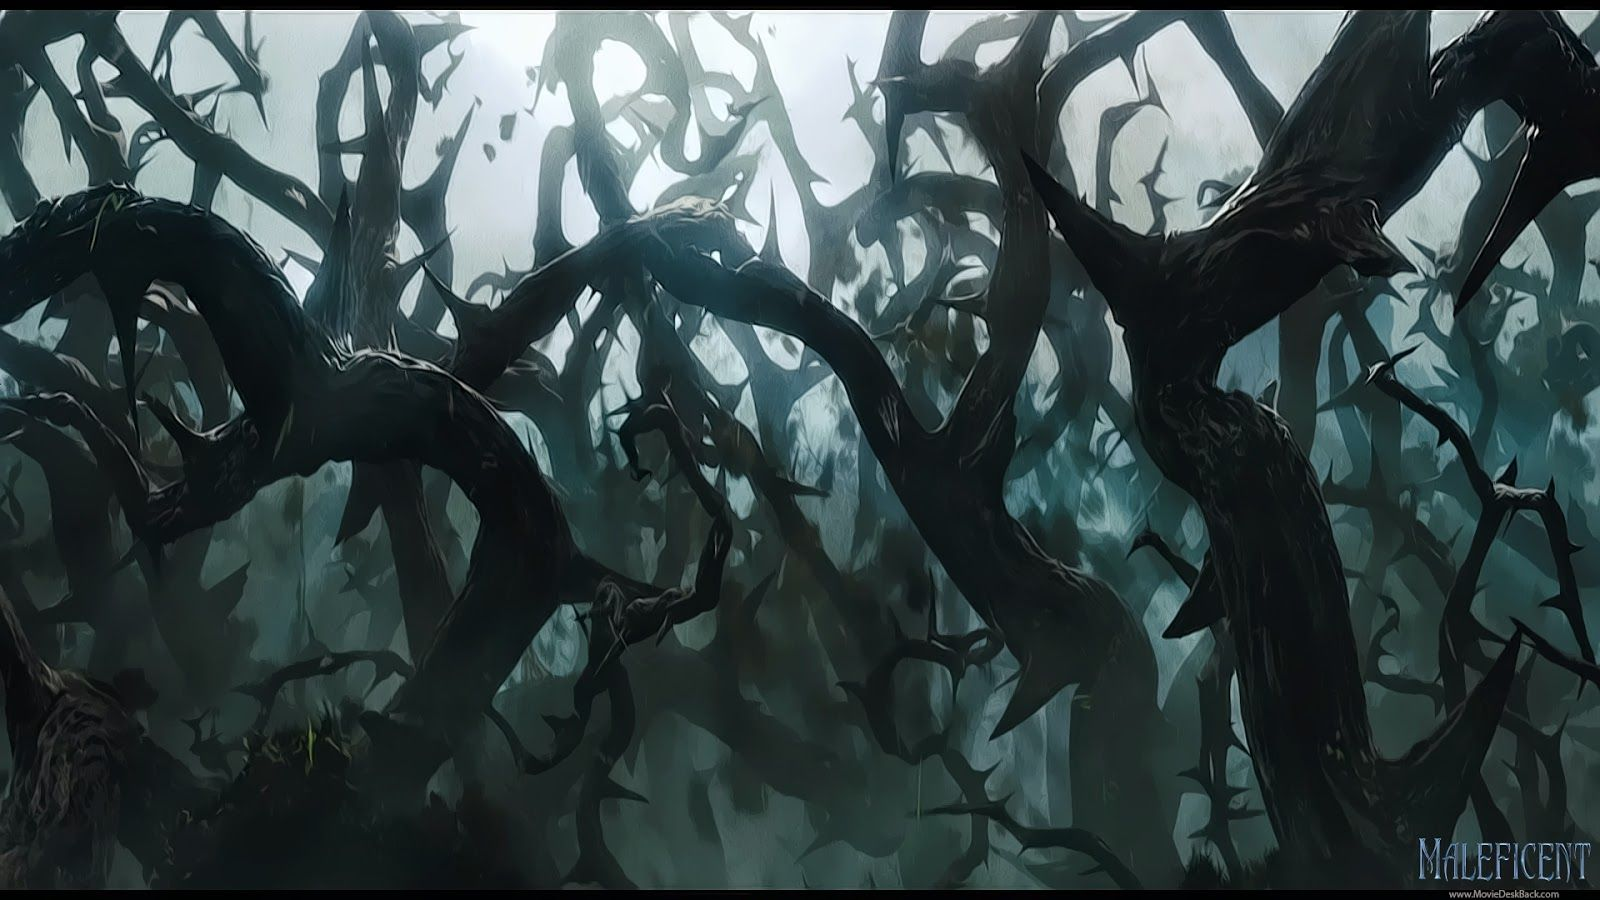 the forest of thorns part of baelathors territory in the feylands